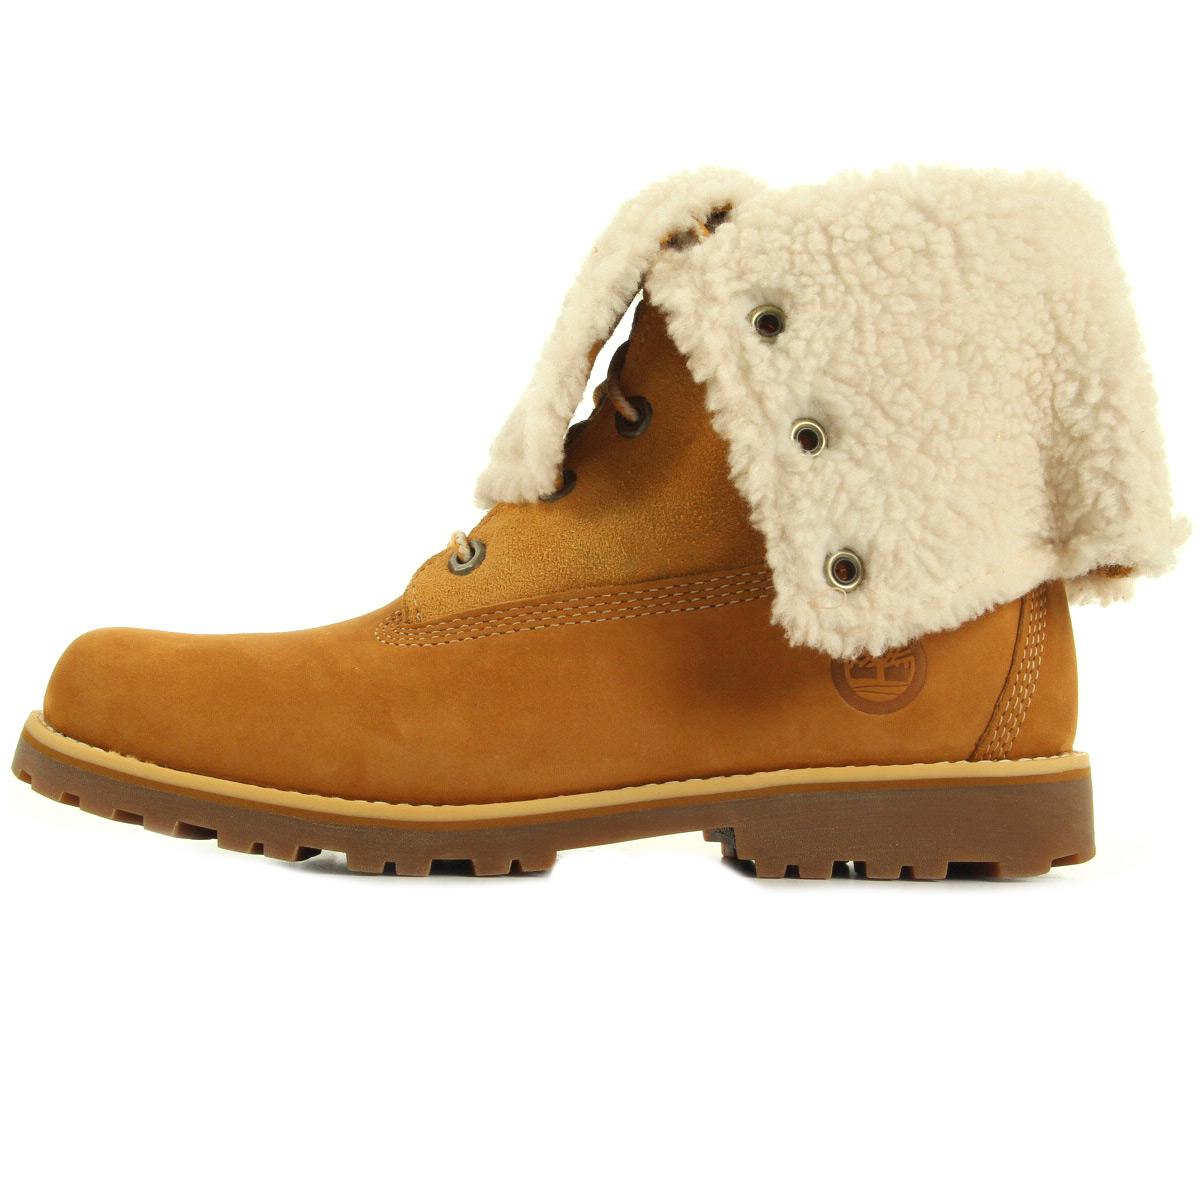 Timberland 6 In WP Shearling Bo Wheat CA156N, Boots femme